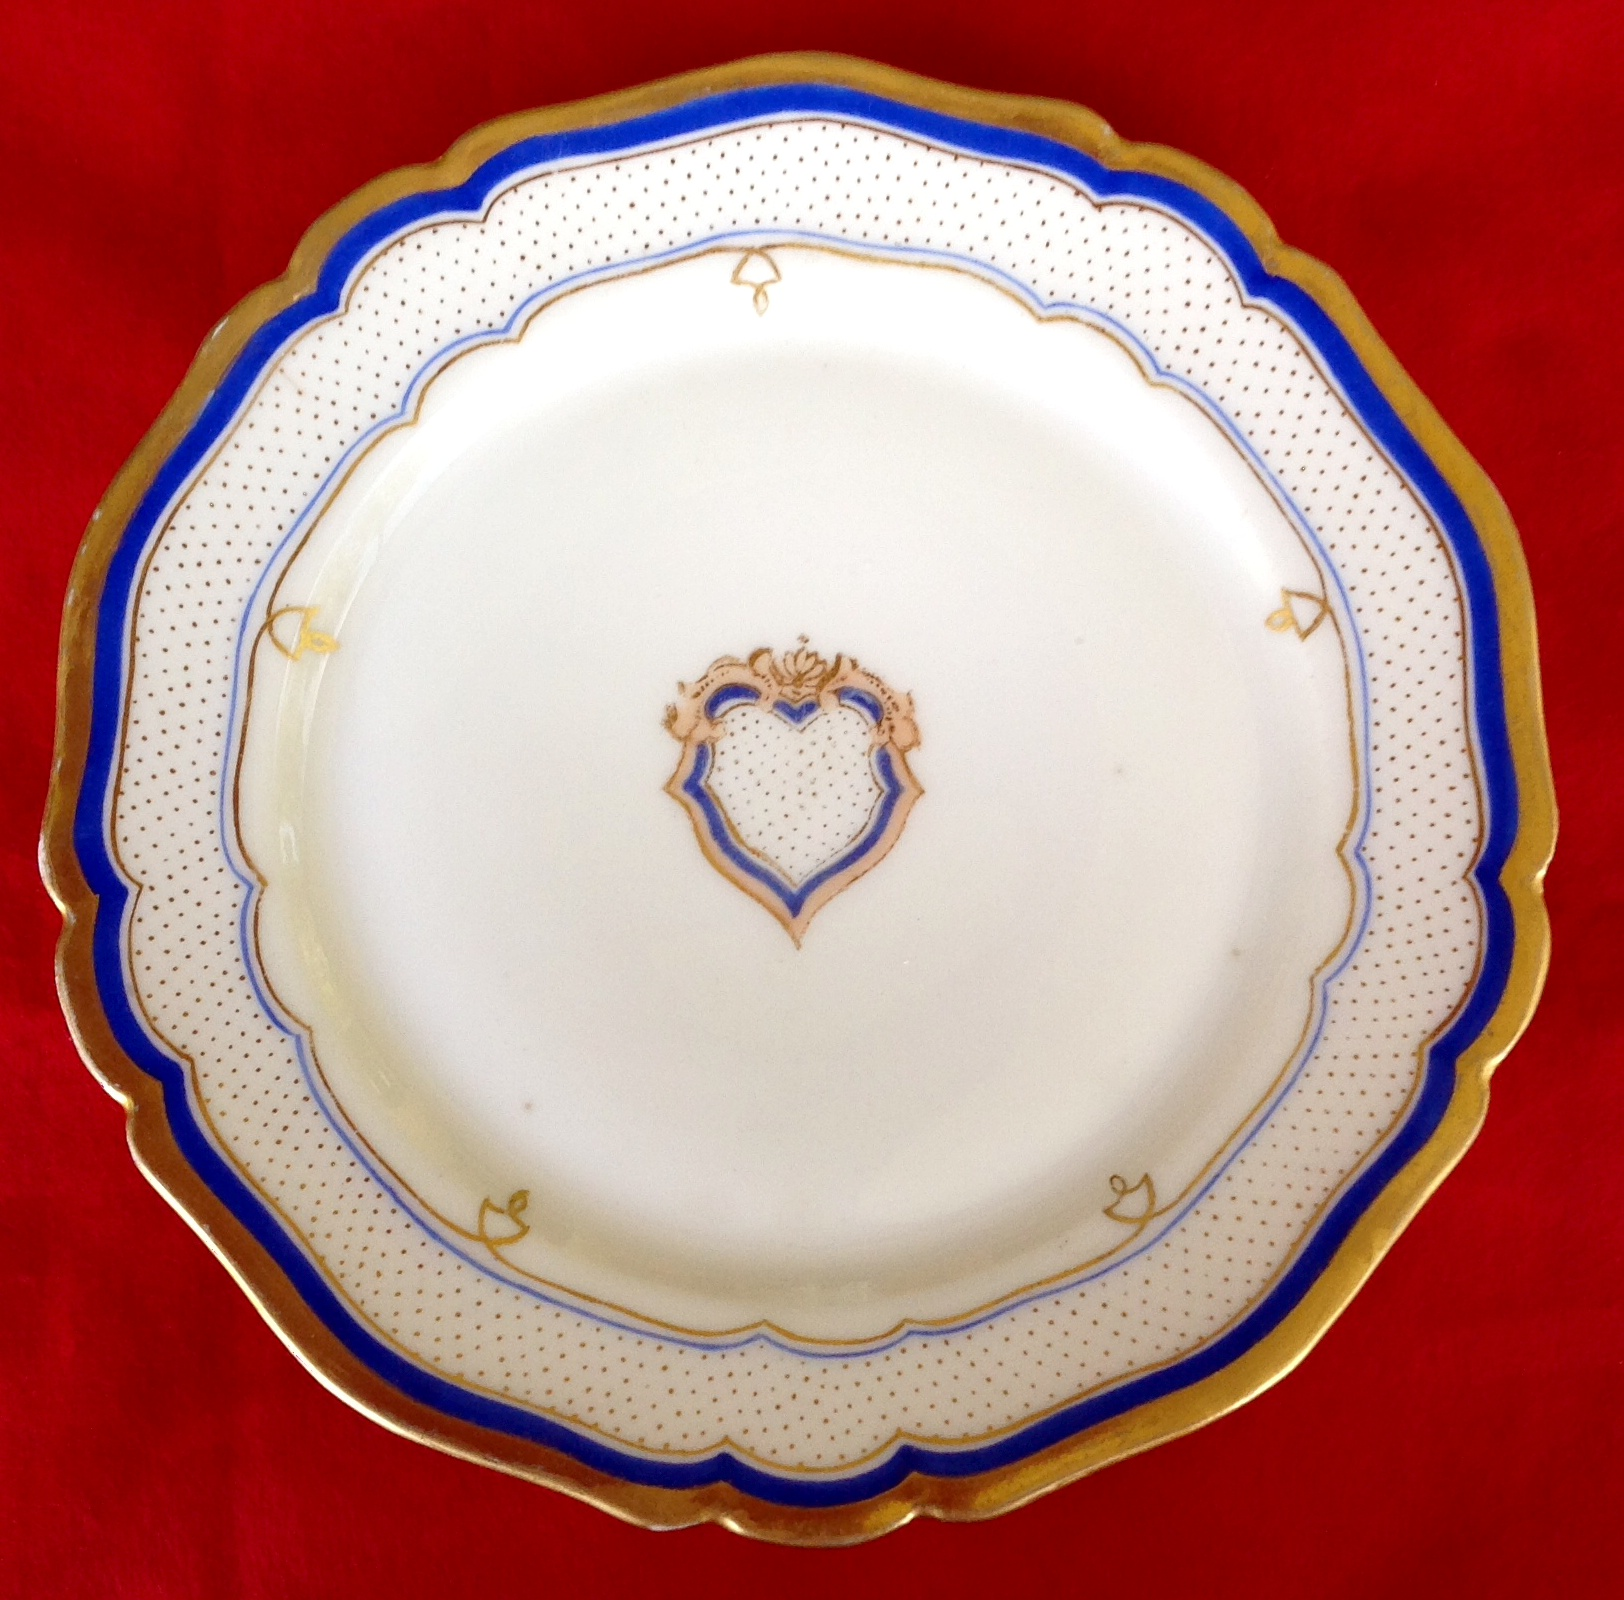 franklin pierce white house china service dinner plate